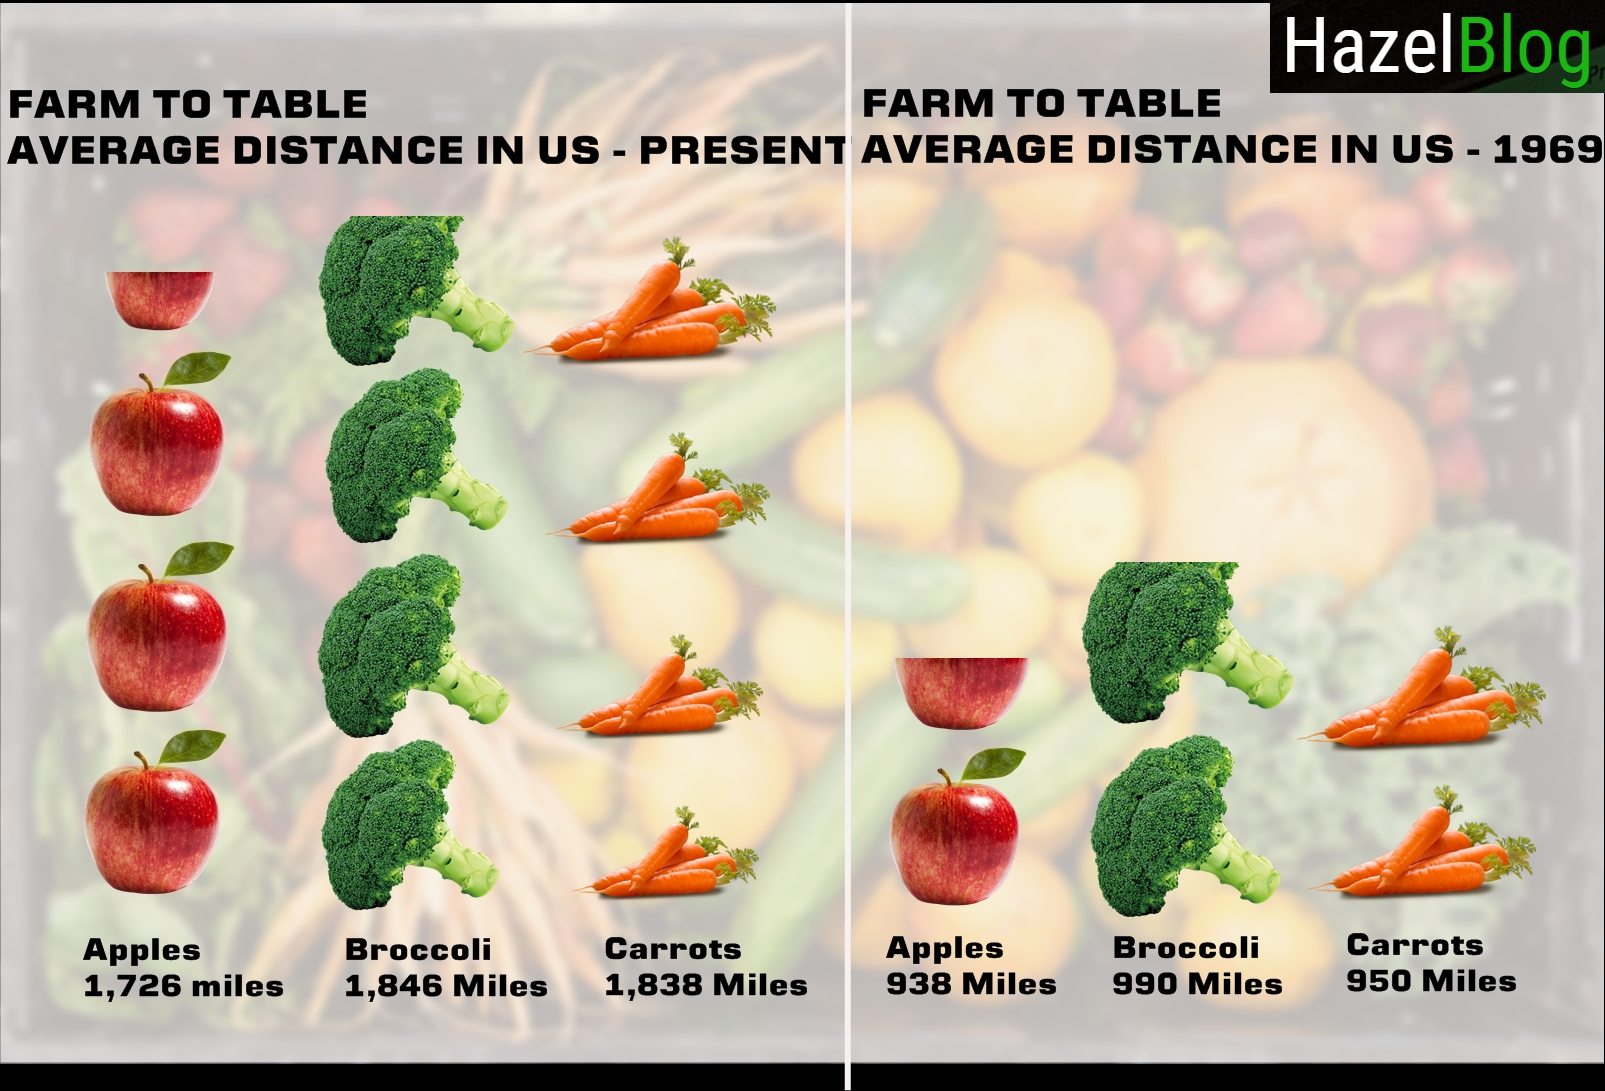 Average produce travel distances to consumer markets have doubled in the past 50 years.